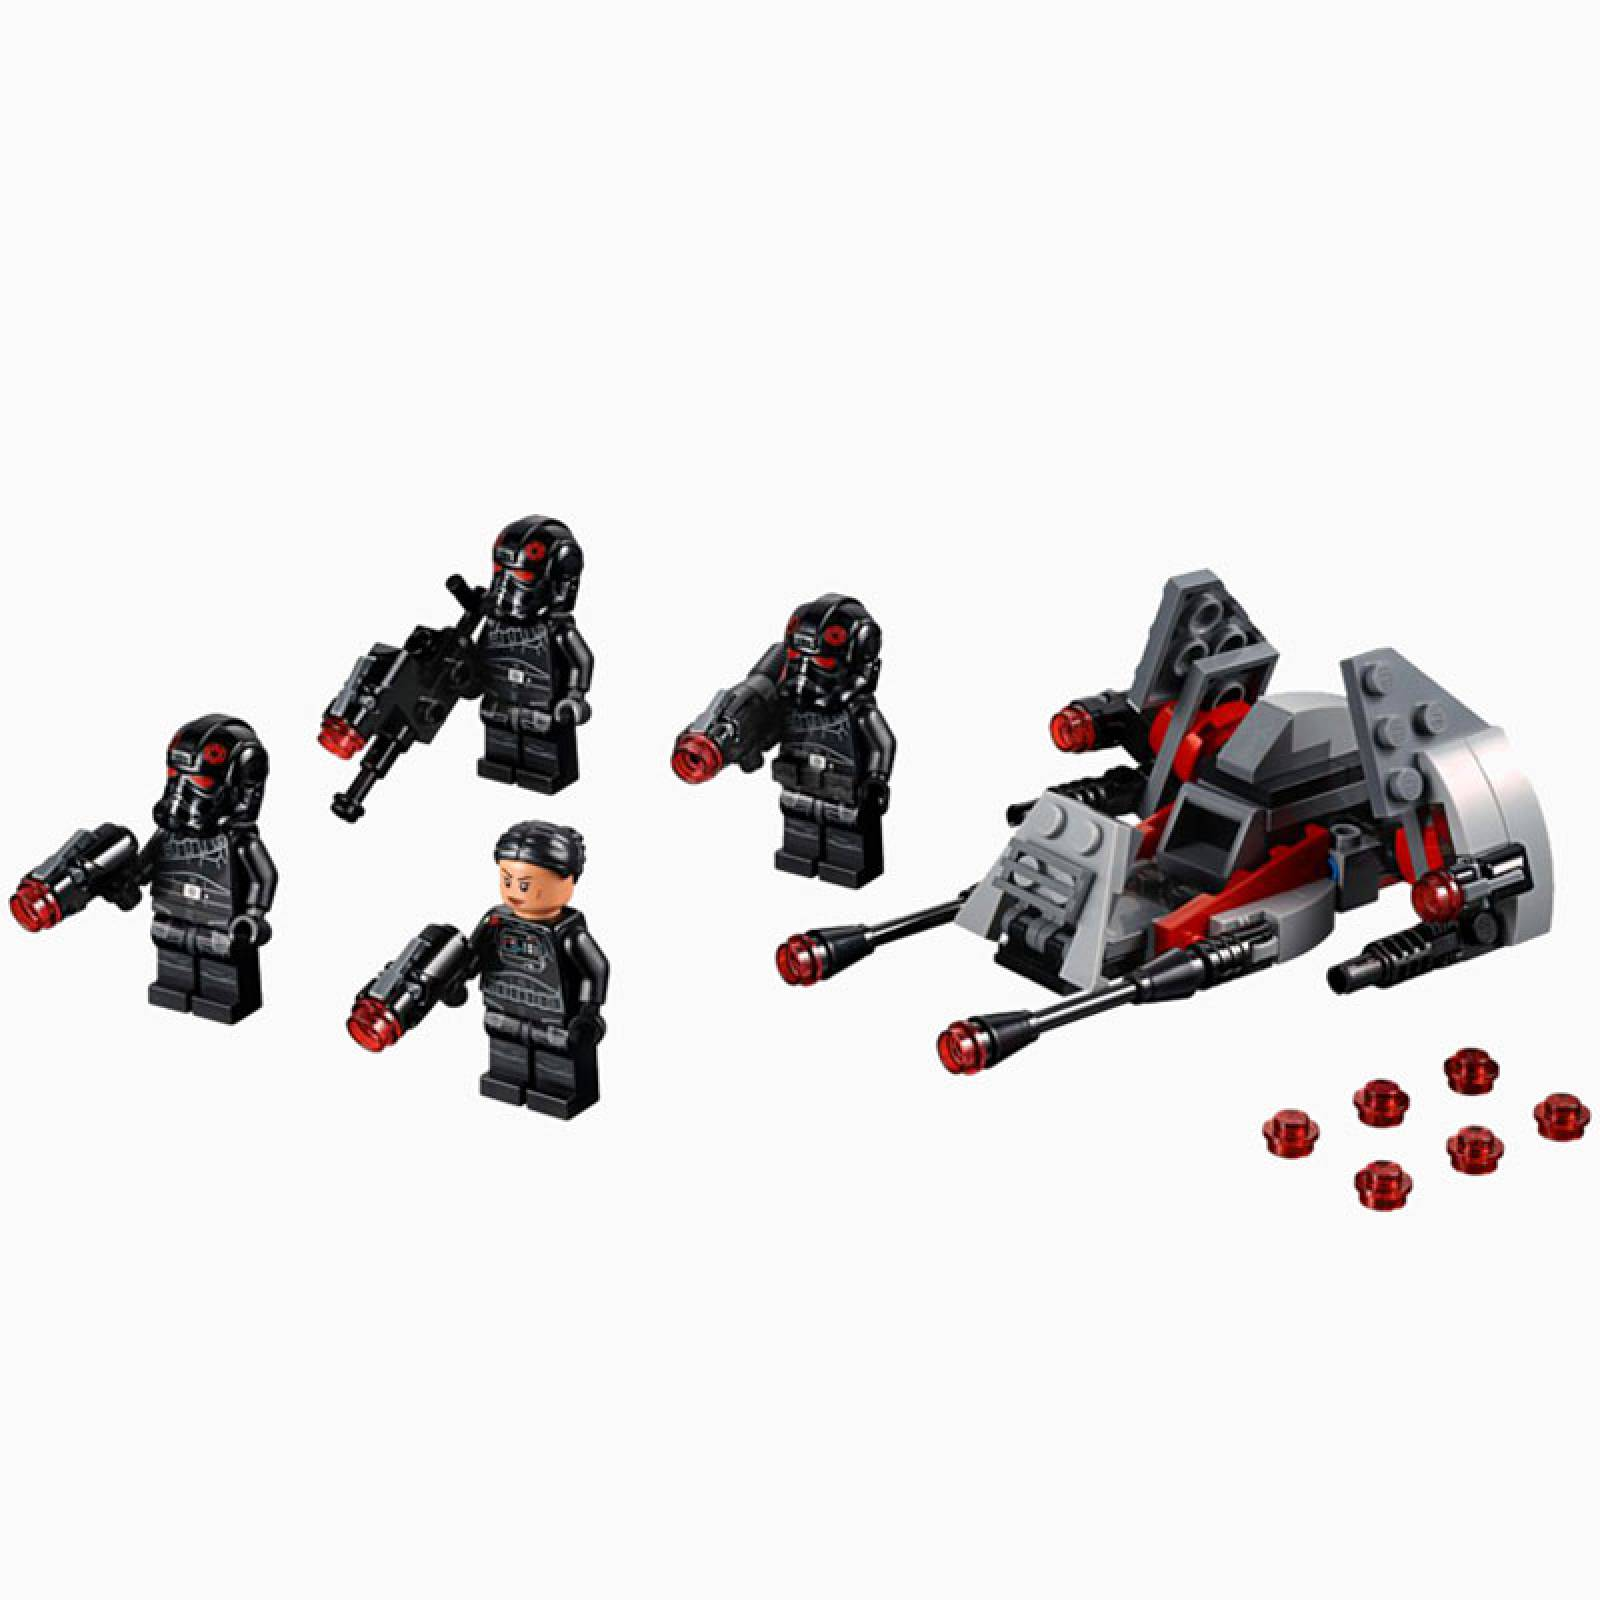 LEGO® Star Wars Inferno Squad Battle Pack 75226 thumbnails